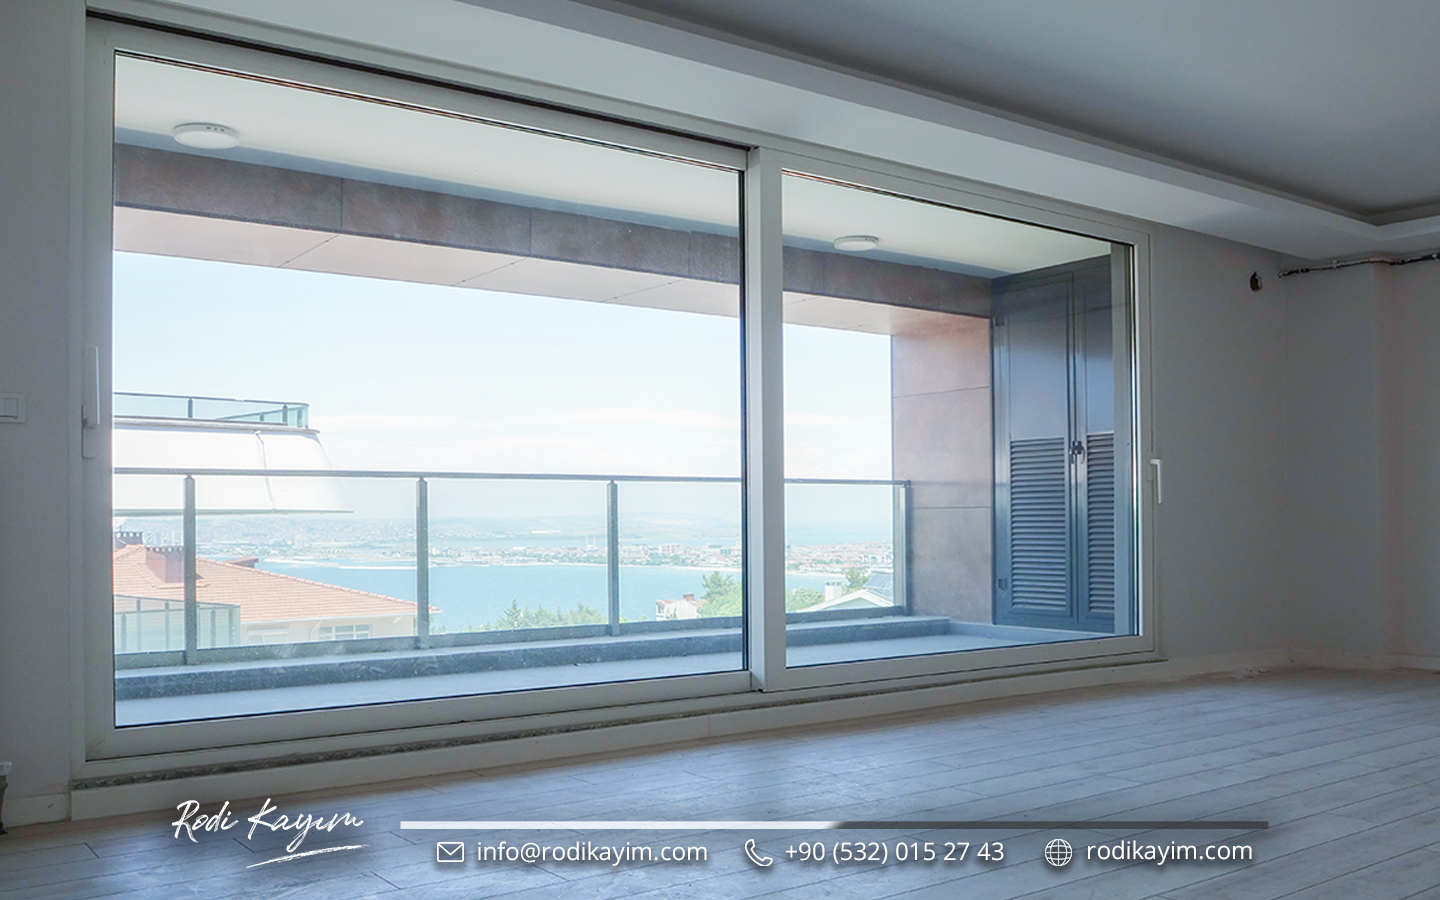 Yildiz Park apartments for sale in istanbul 20